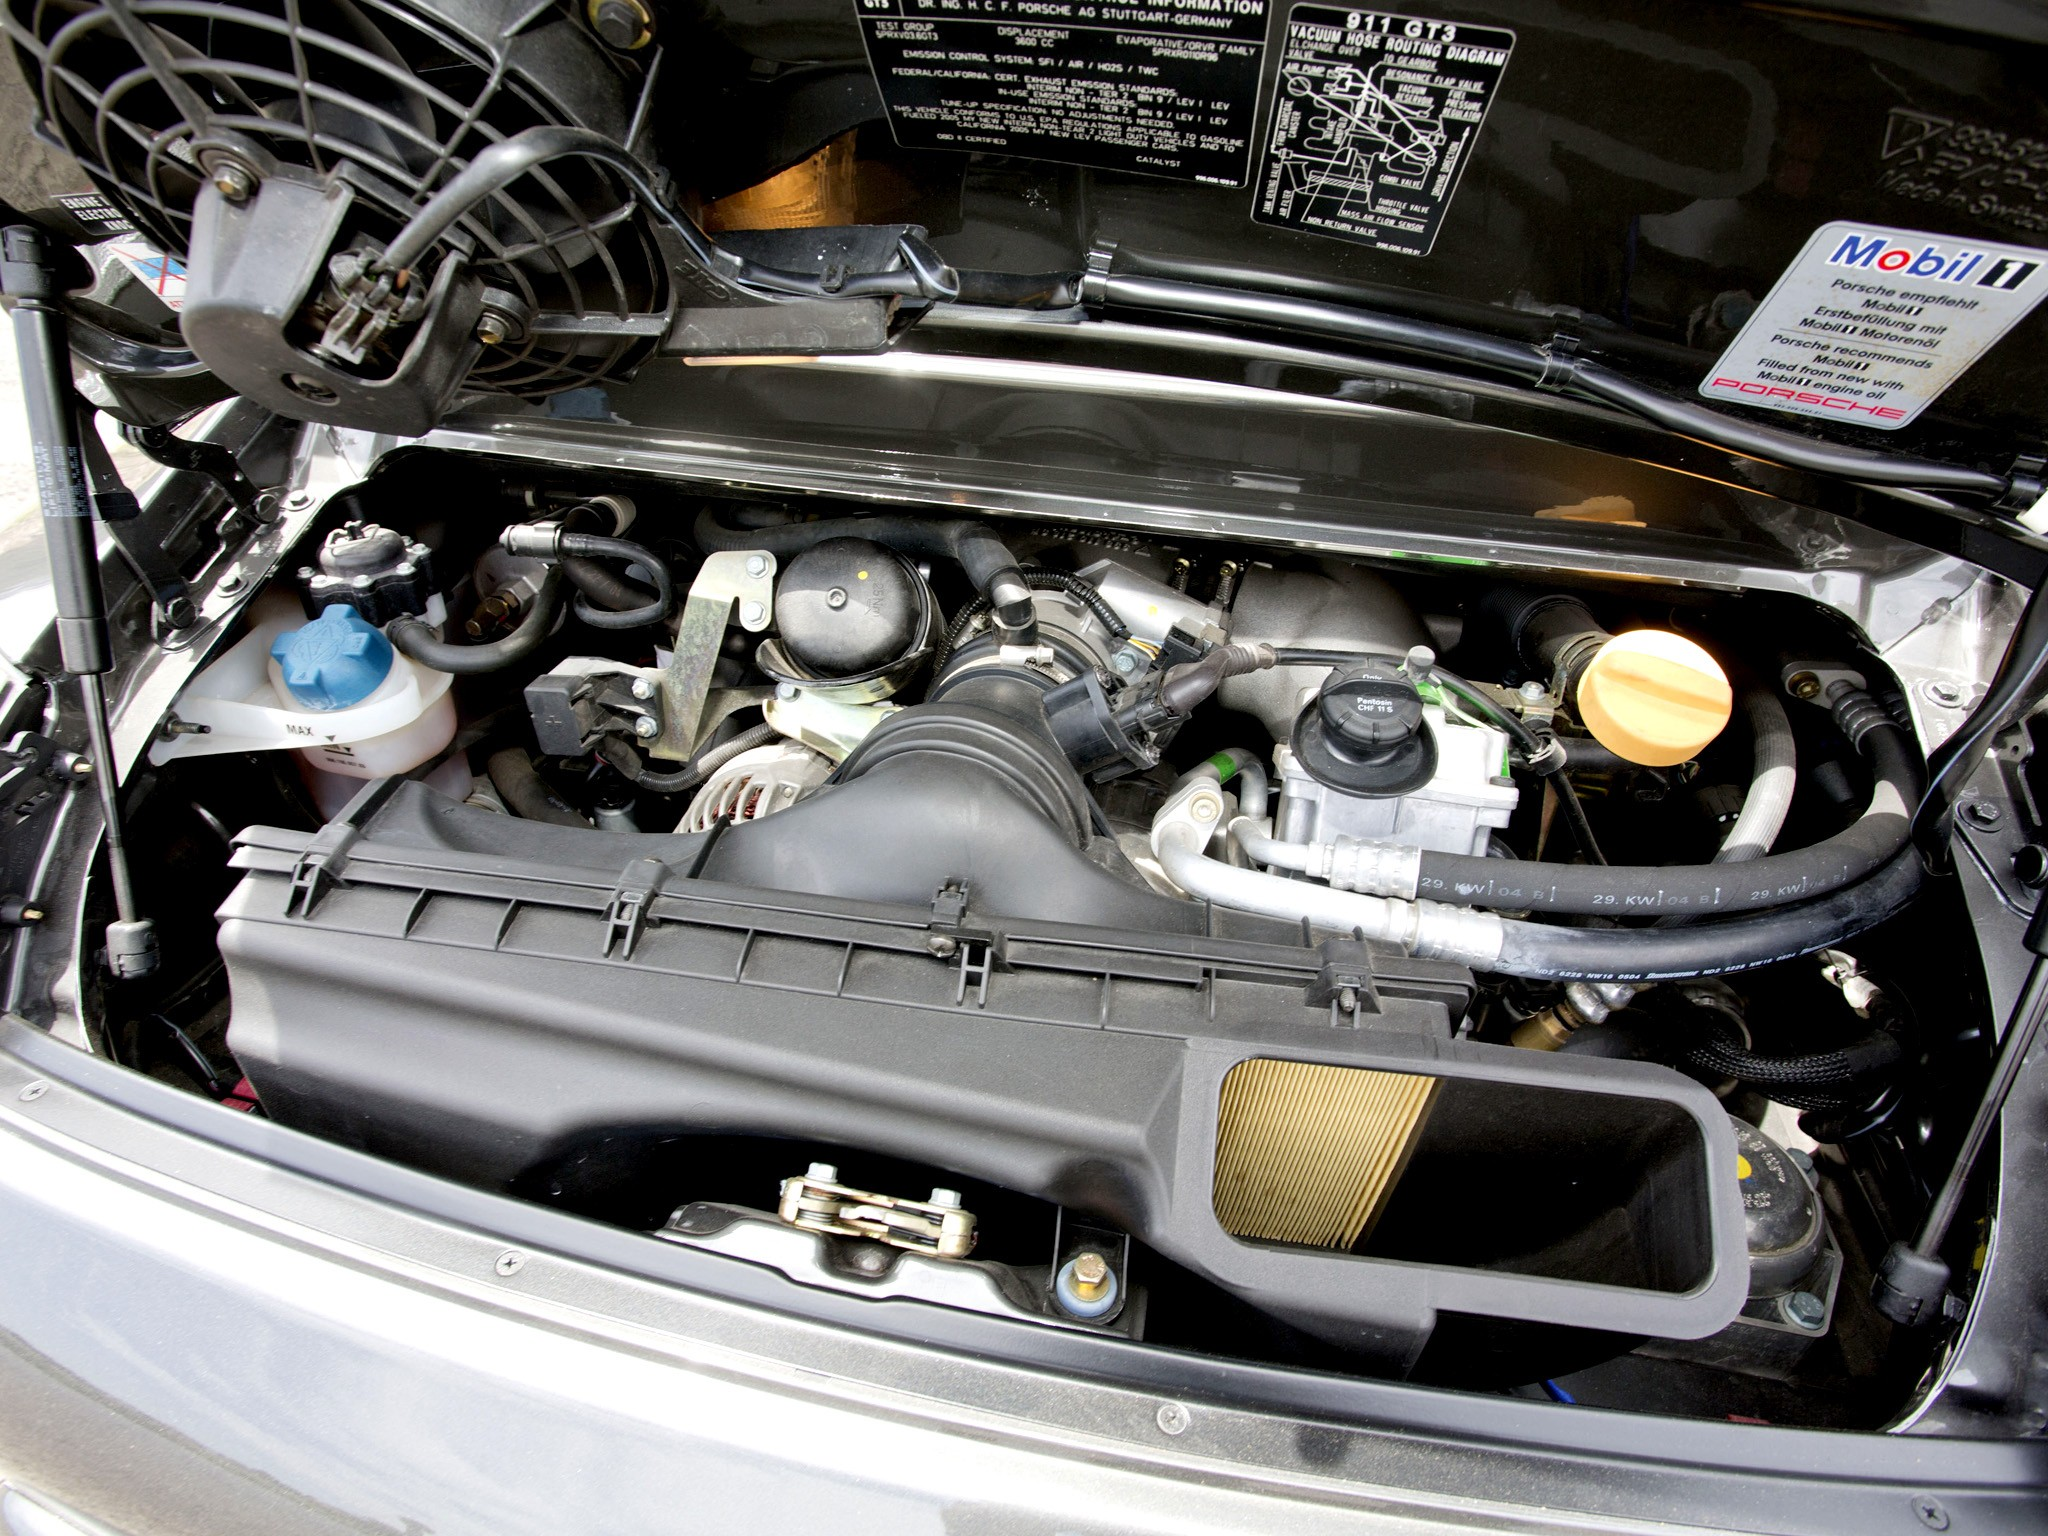 Porsche 996 Engine Diagram Wiring Library Tail Light Get Free Image About 911 Gt3 2003 2006